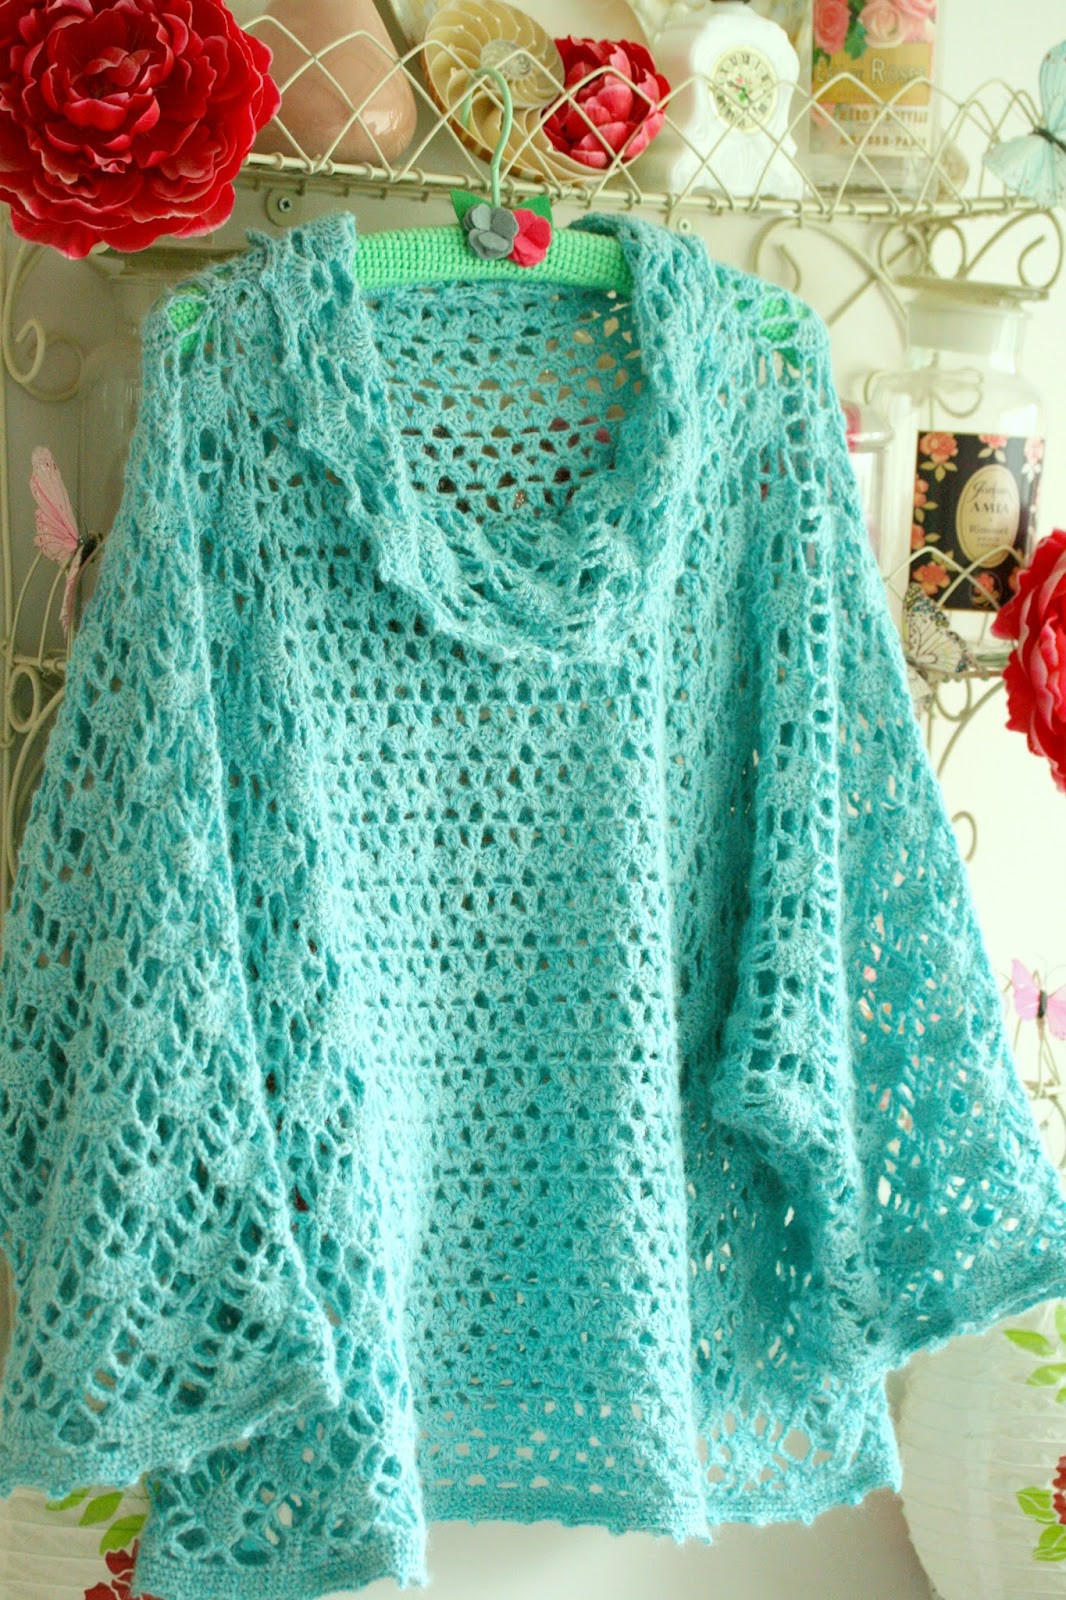 Luxury Little Treasures 5 Free and Fabulous Crochet Poncho Patterns Ponco Crochet Of Great 49 Images Ponco Crochet